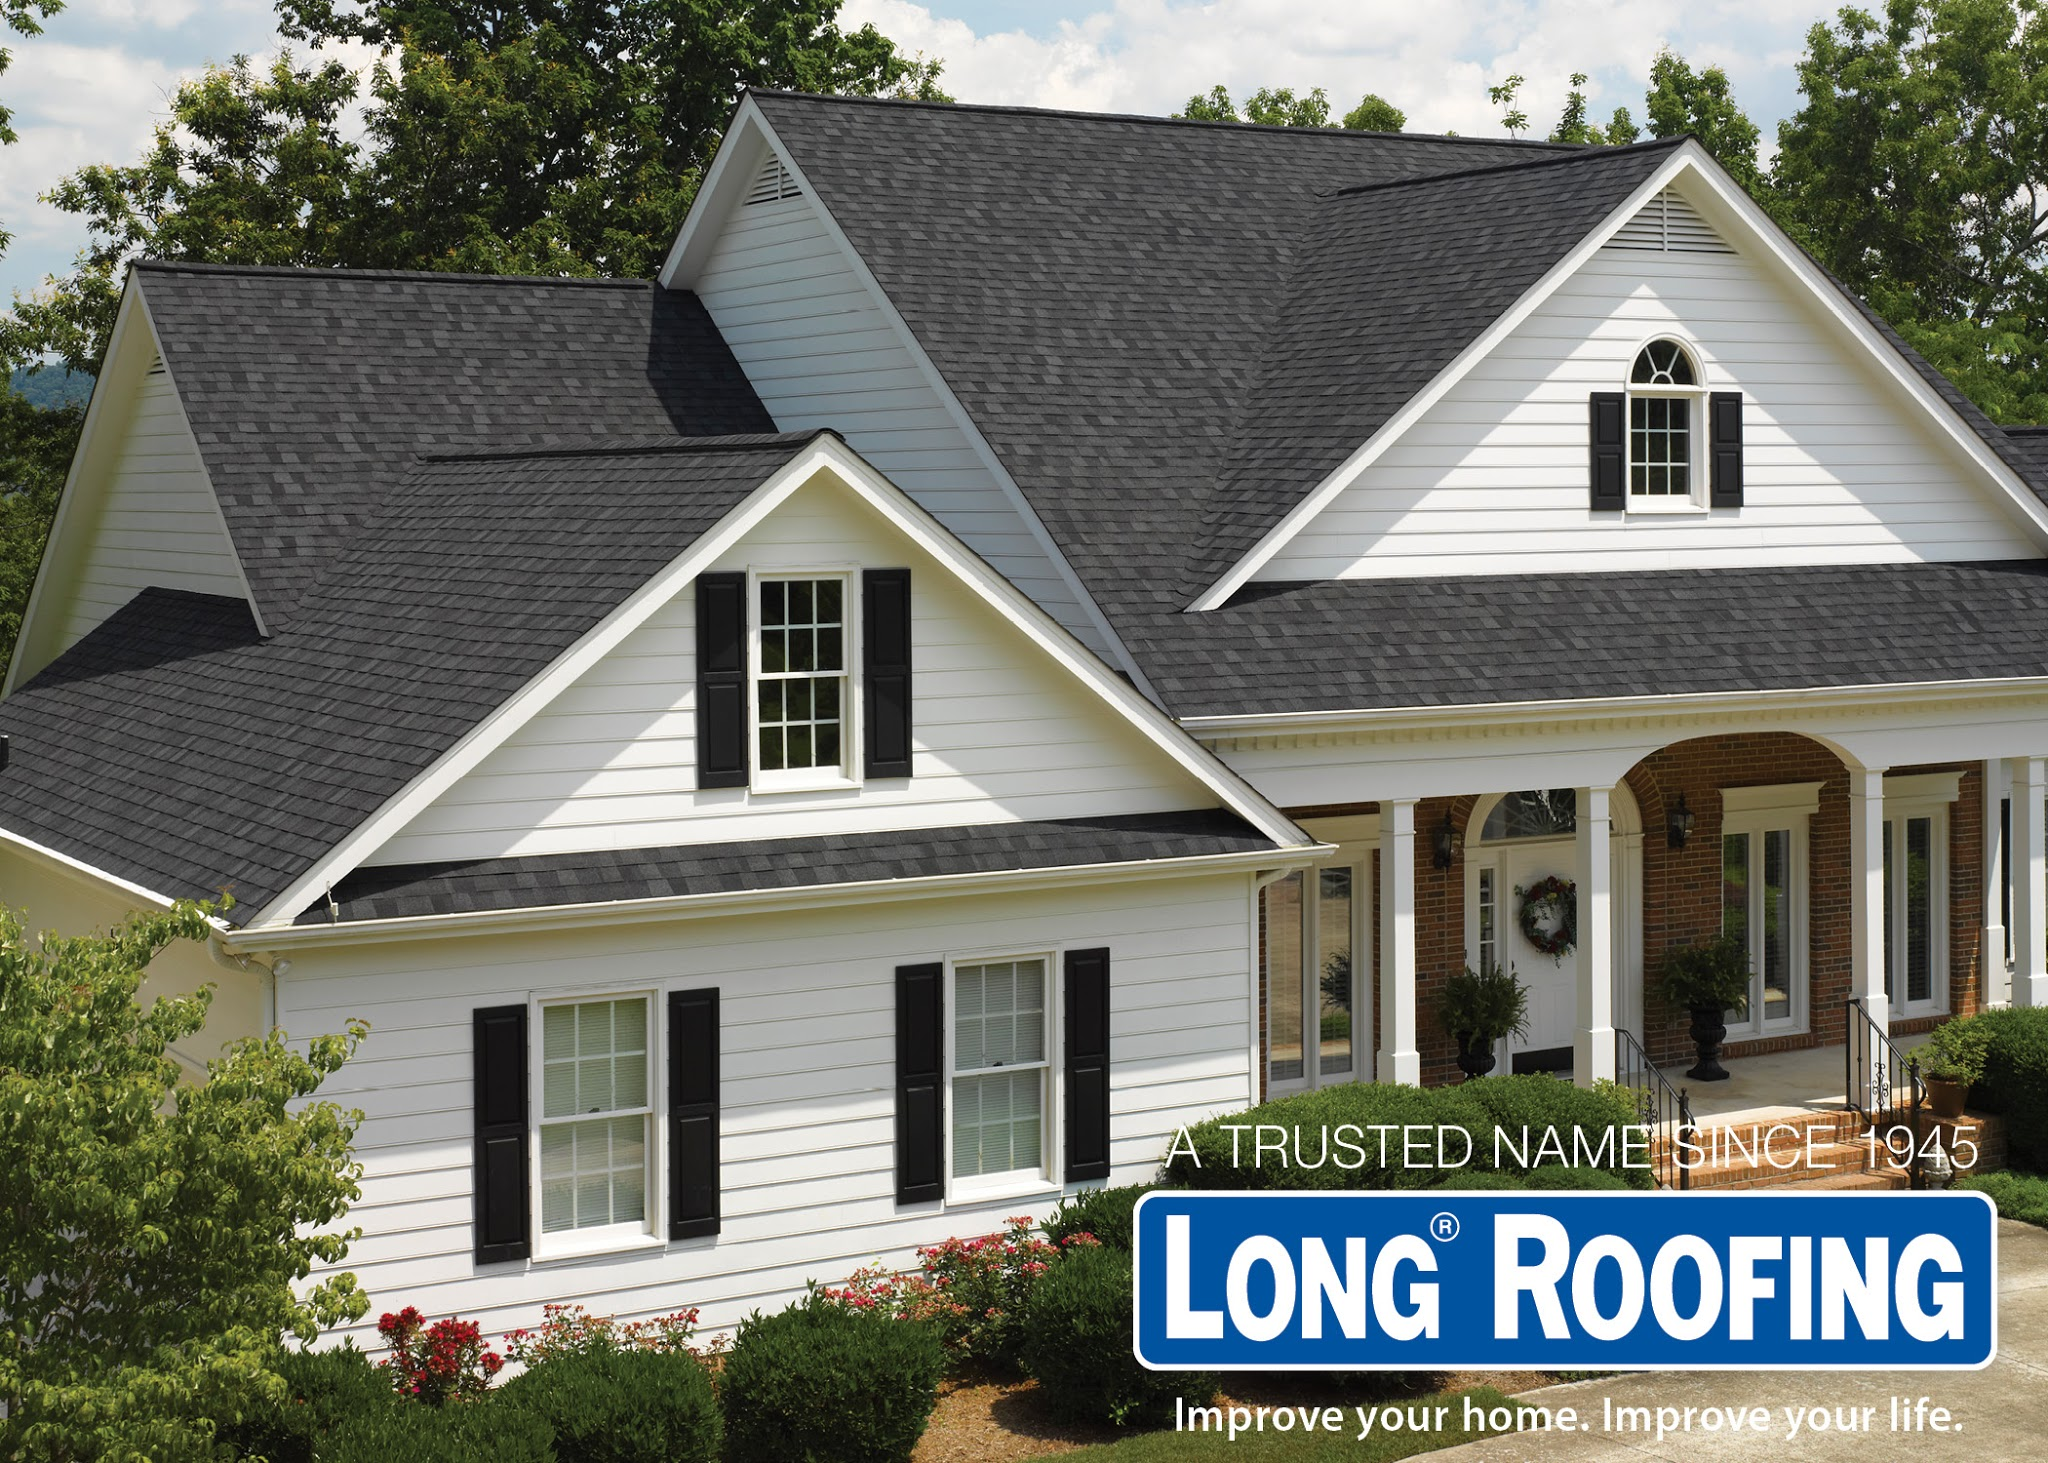 Long Roofing Coupons Near Me In Beltsville 8coupons